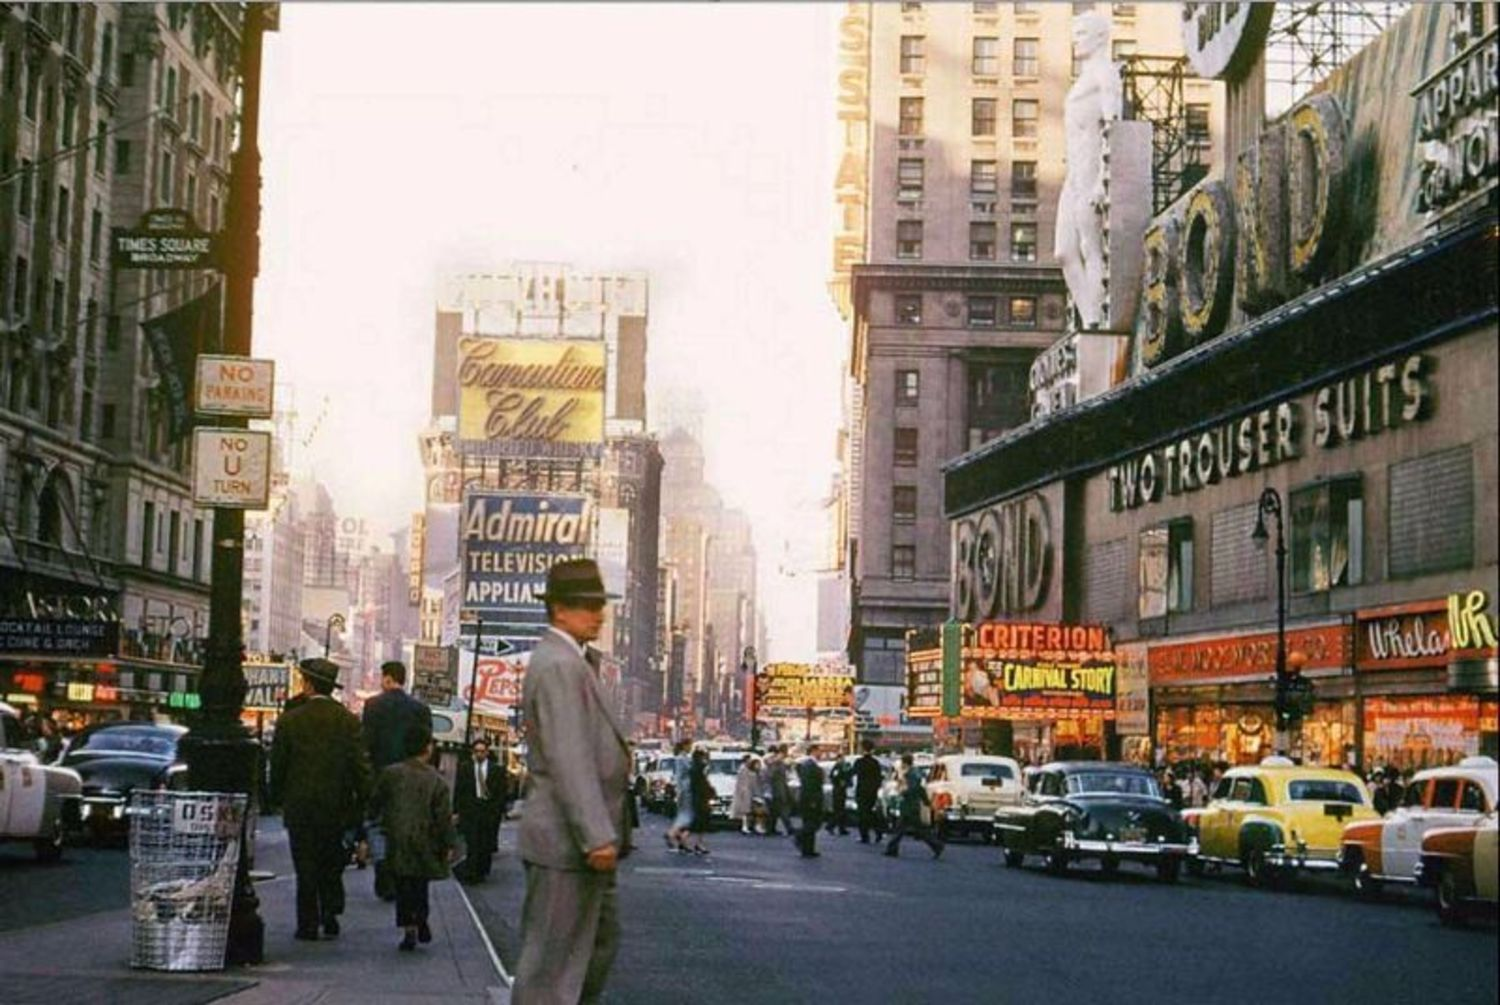 Broadway & 44th Street, April 15, 1954